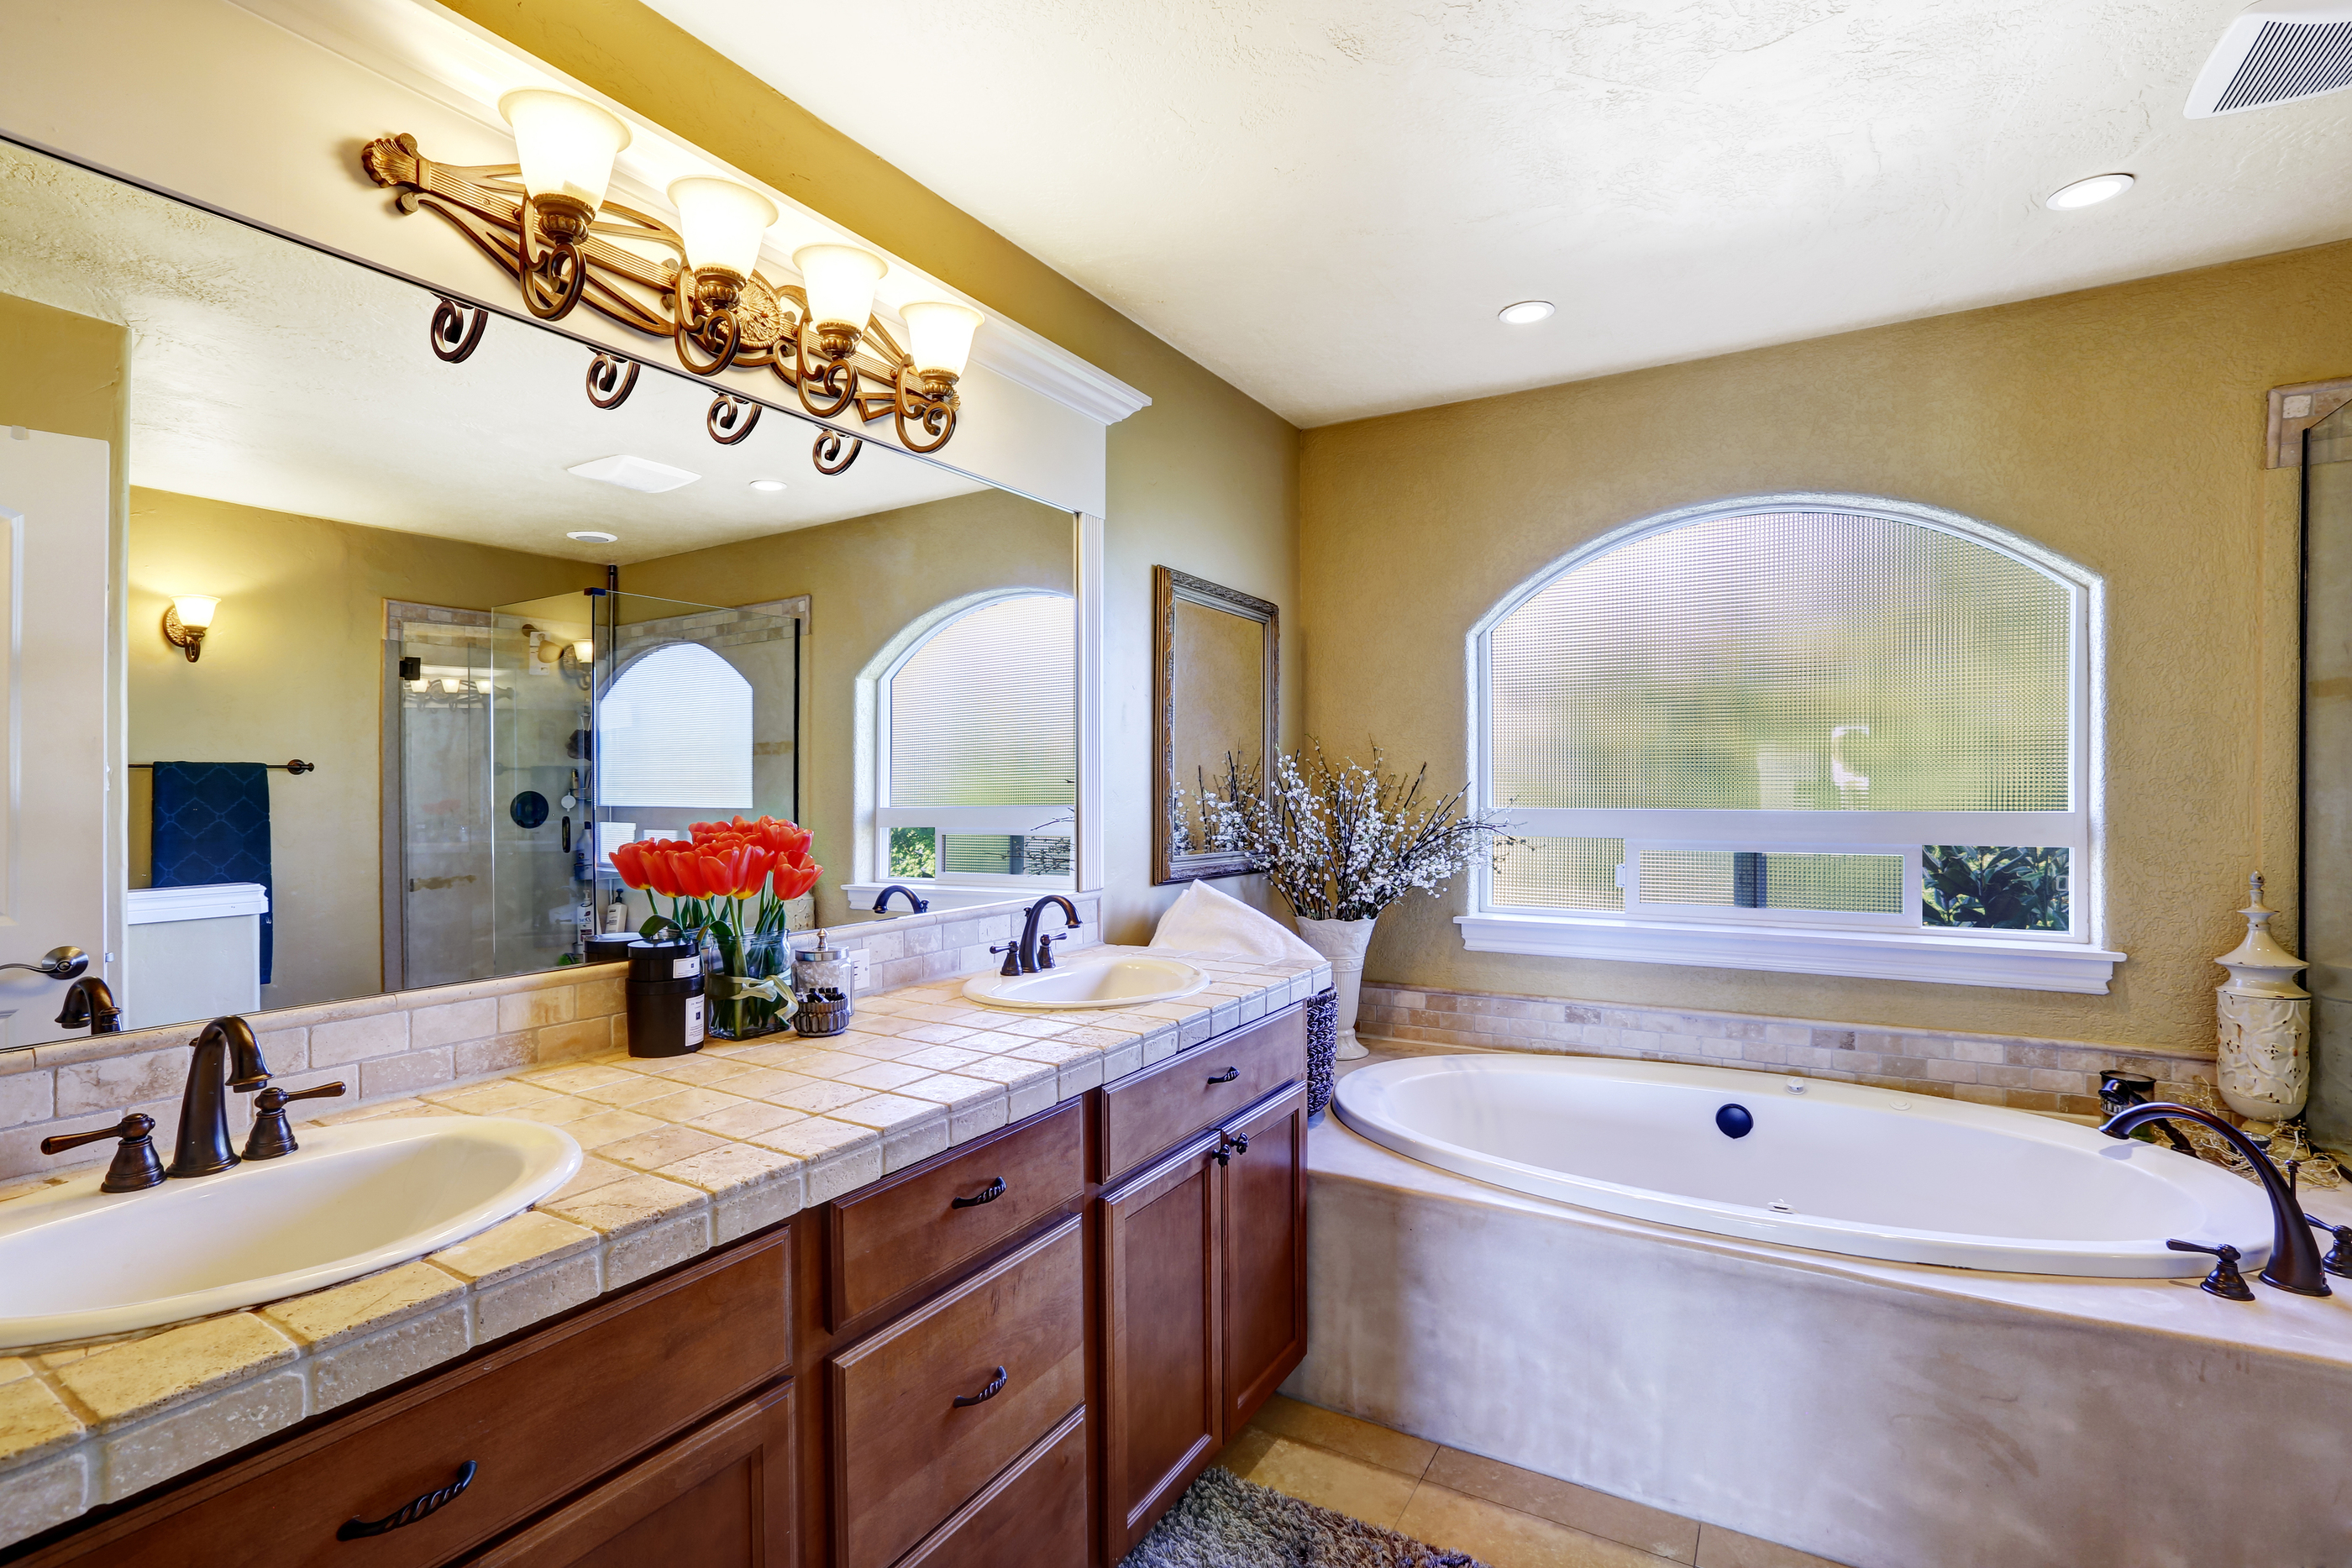 bathroom remodel contractor chicago - rukinet